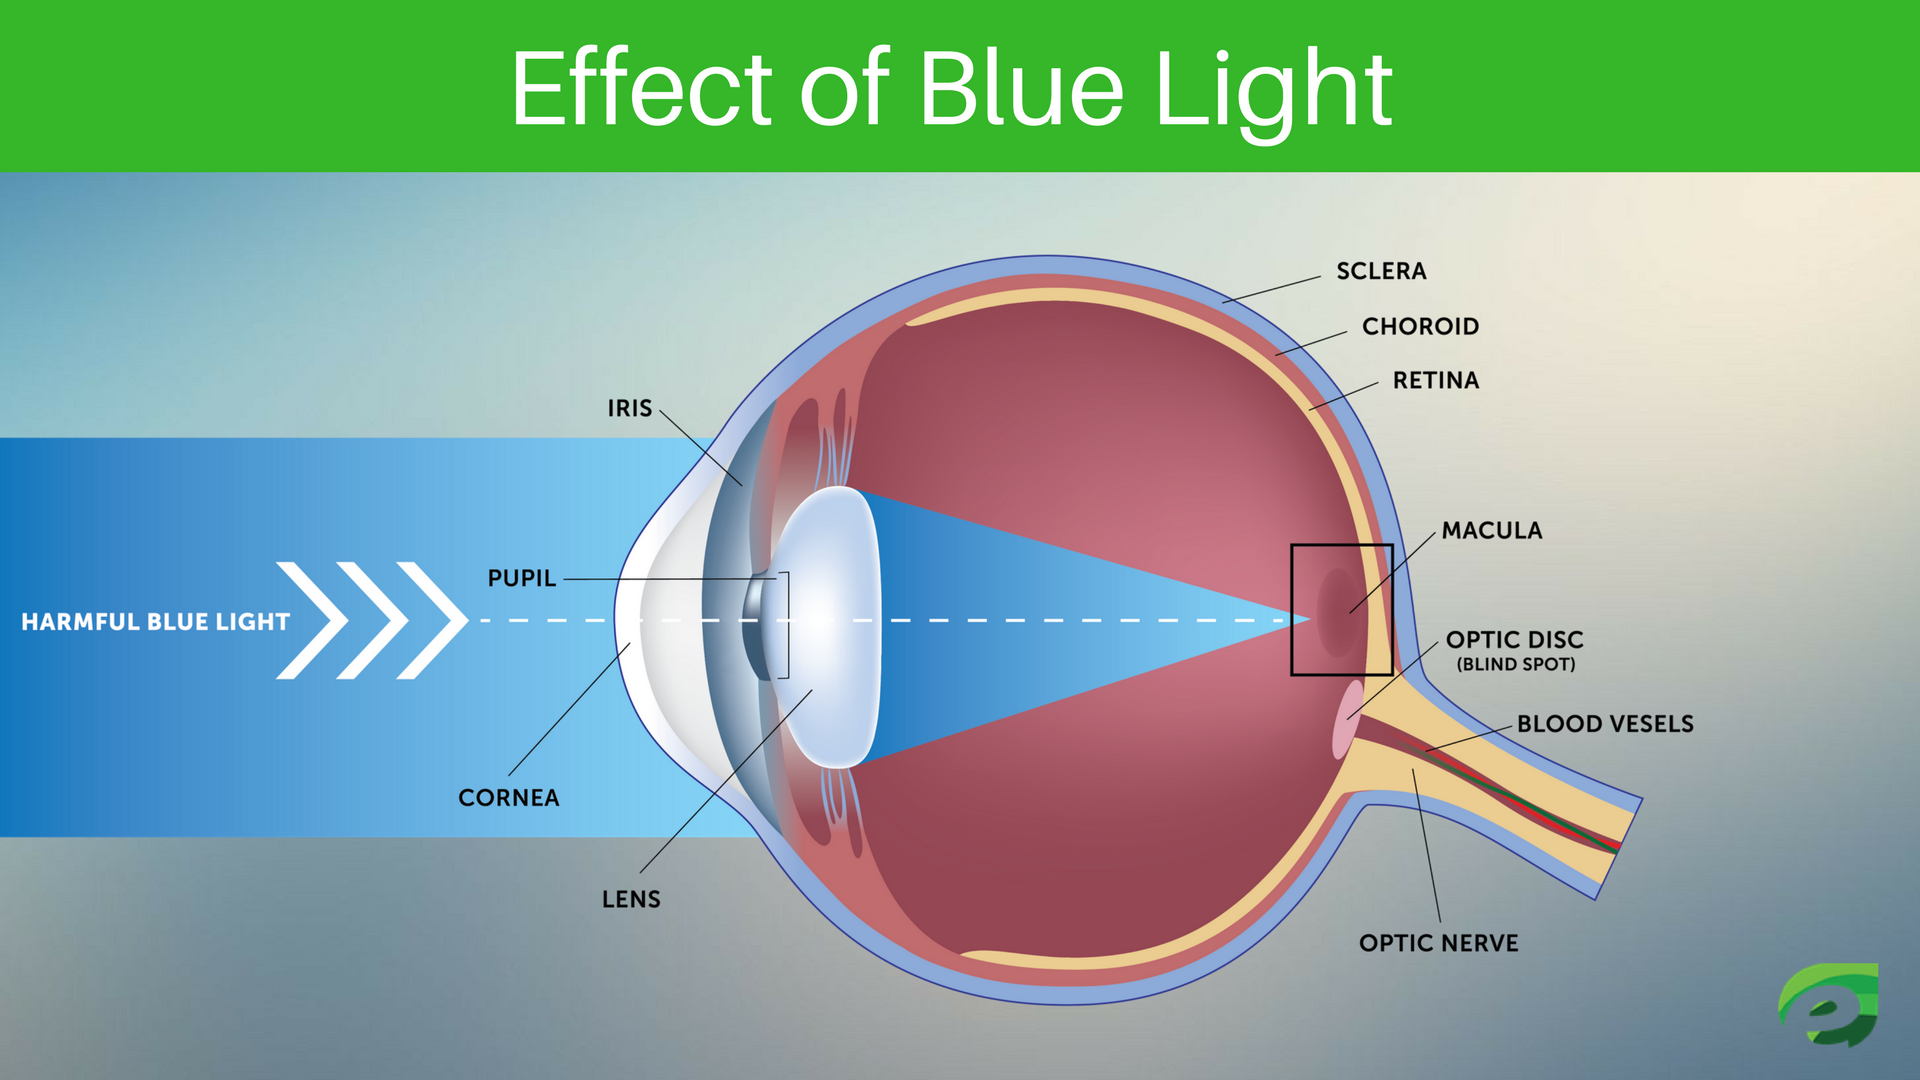 Effect of Blue Light - Eye Protection Apps